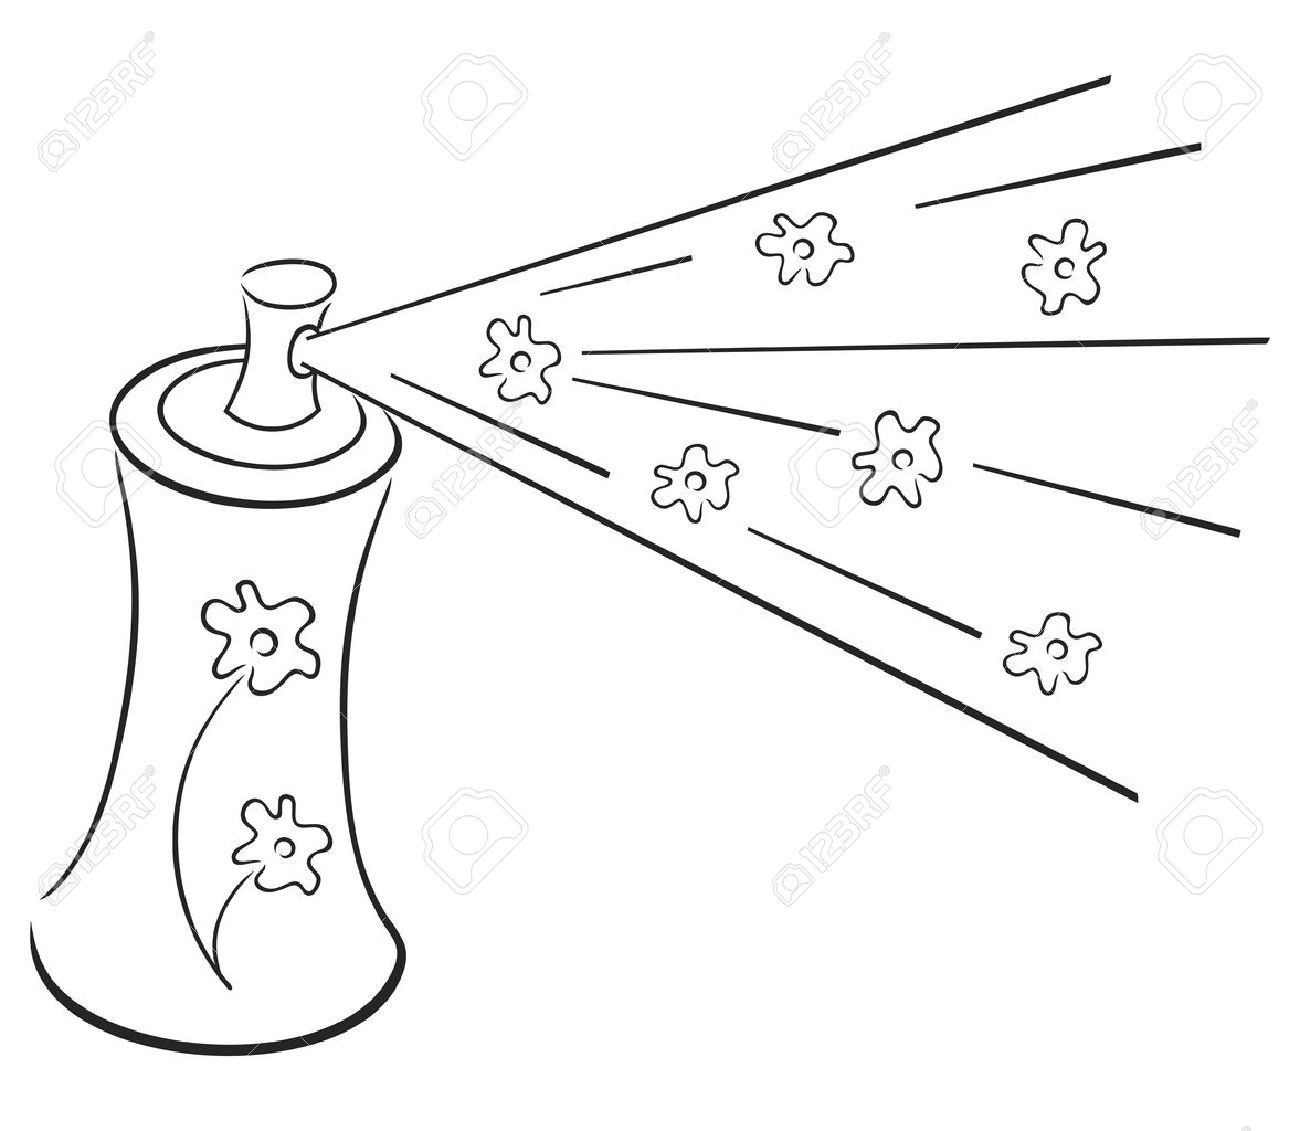 Perfume clipart black and white 8 » Clipart Station.